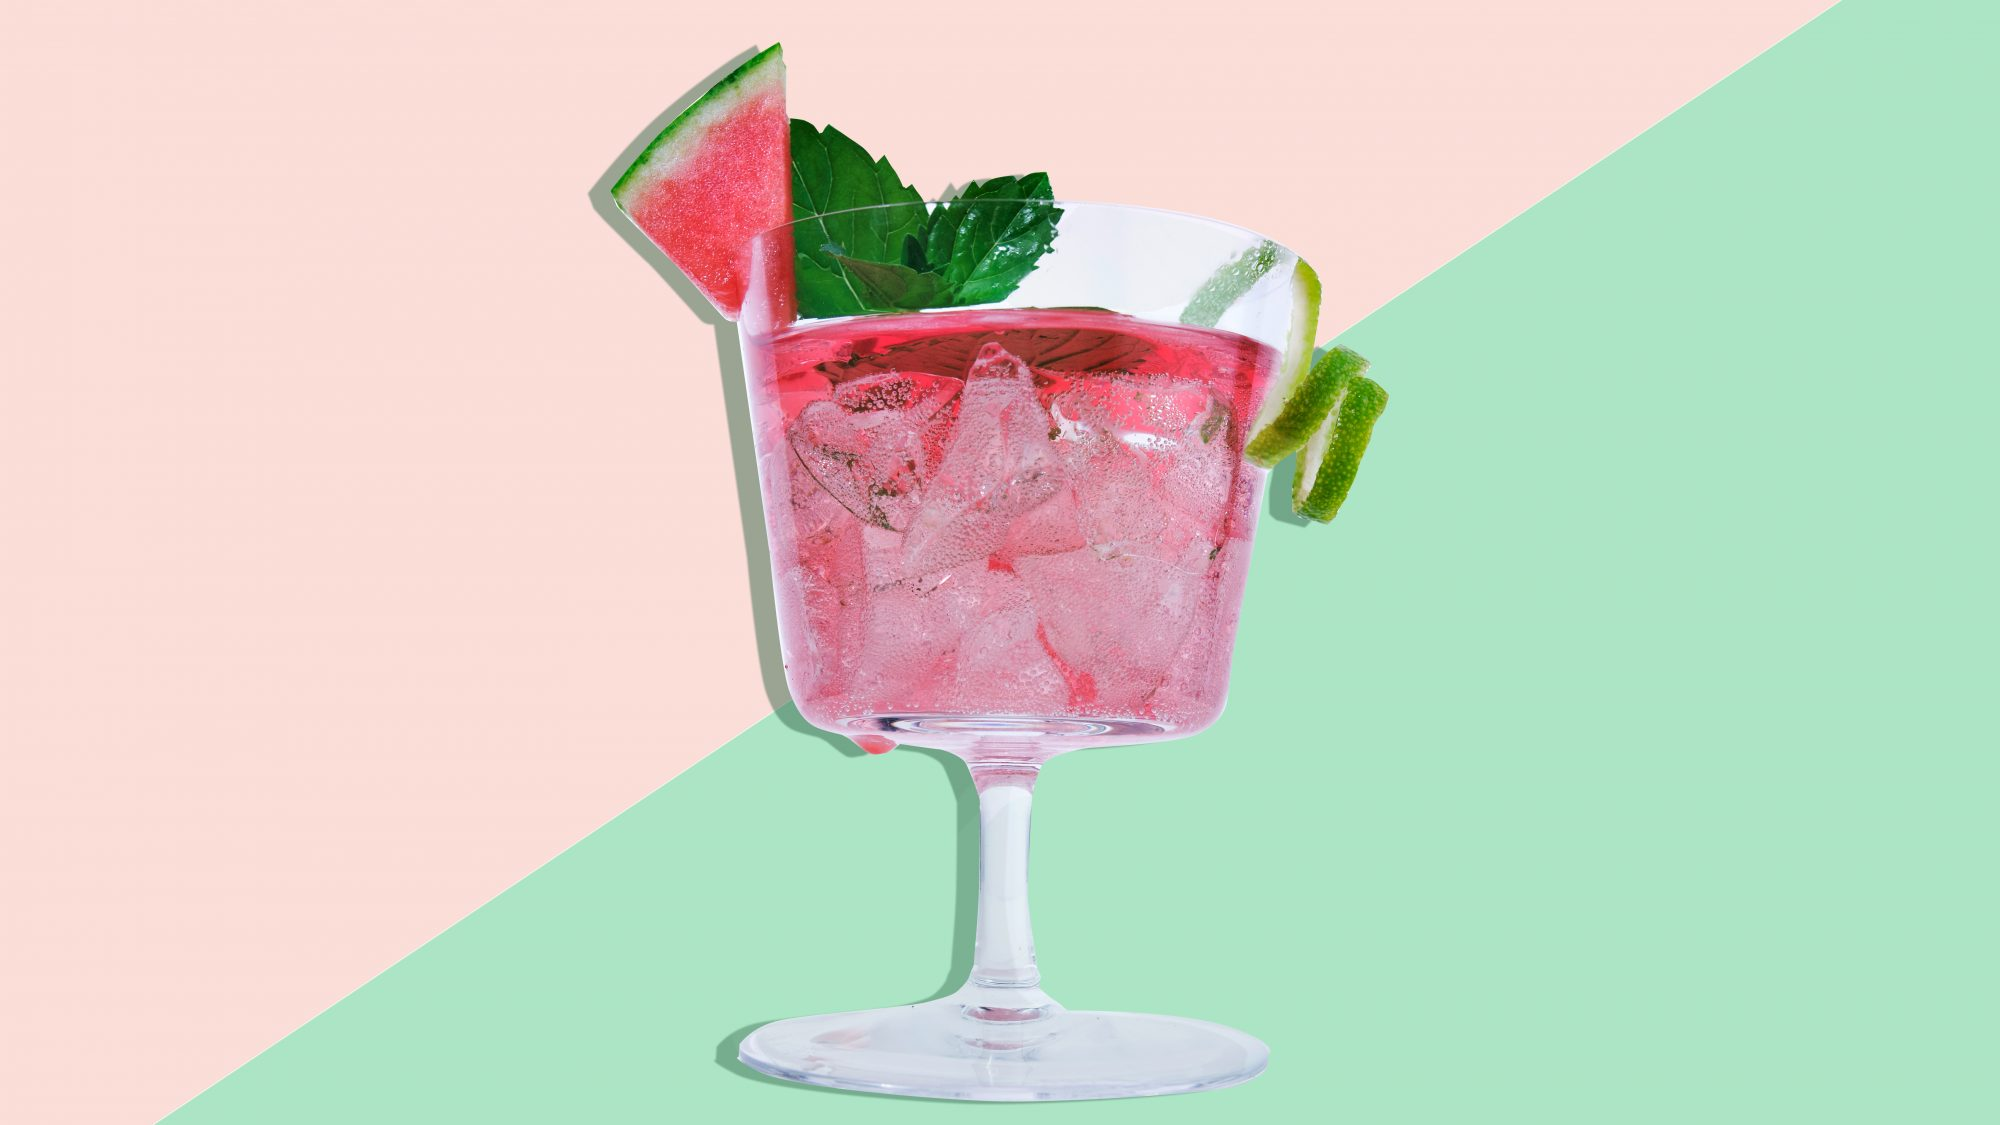 how to make a watermelon cup